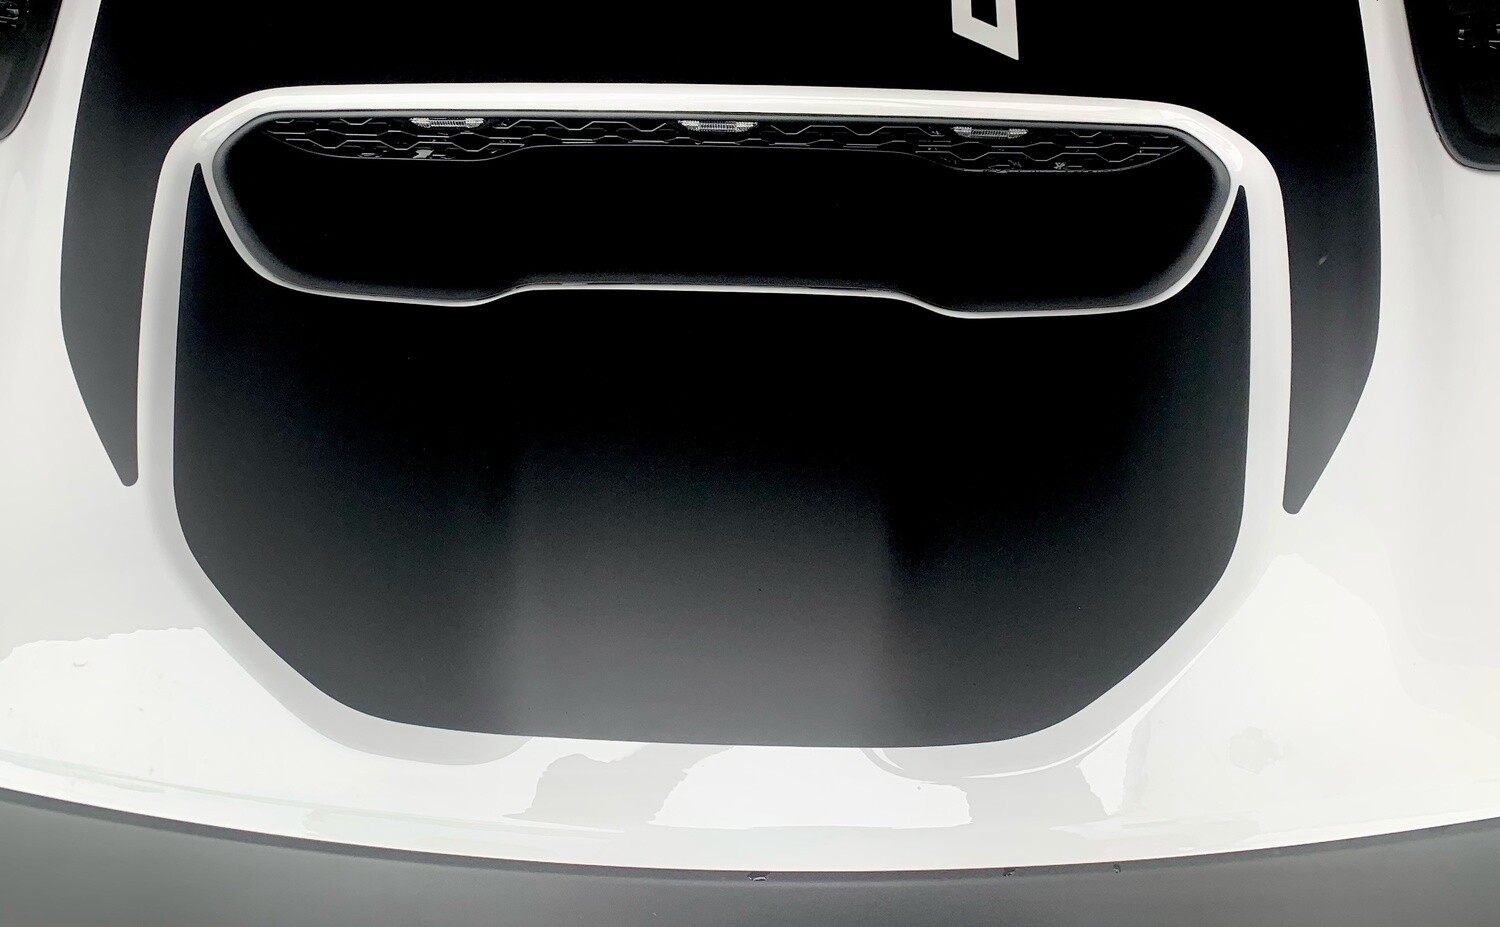 2021 - UP Ram TRX Sport Hood Scoop Insert Blackout Decal Kit